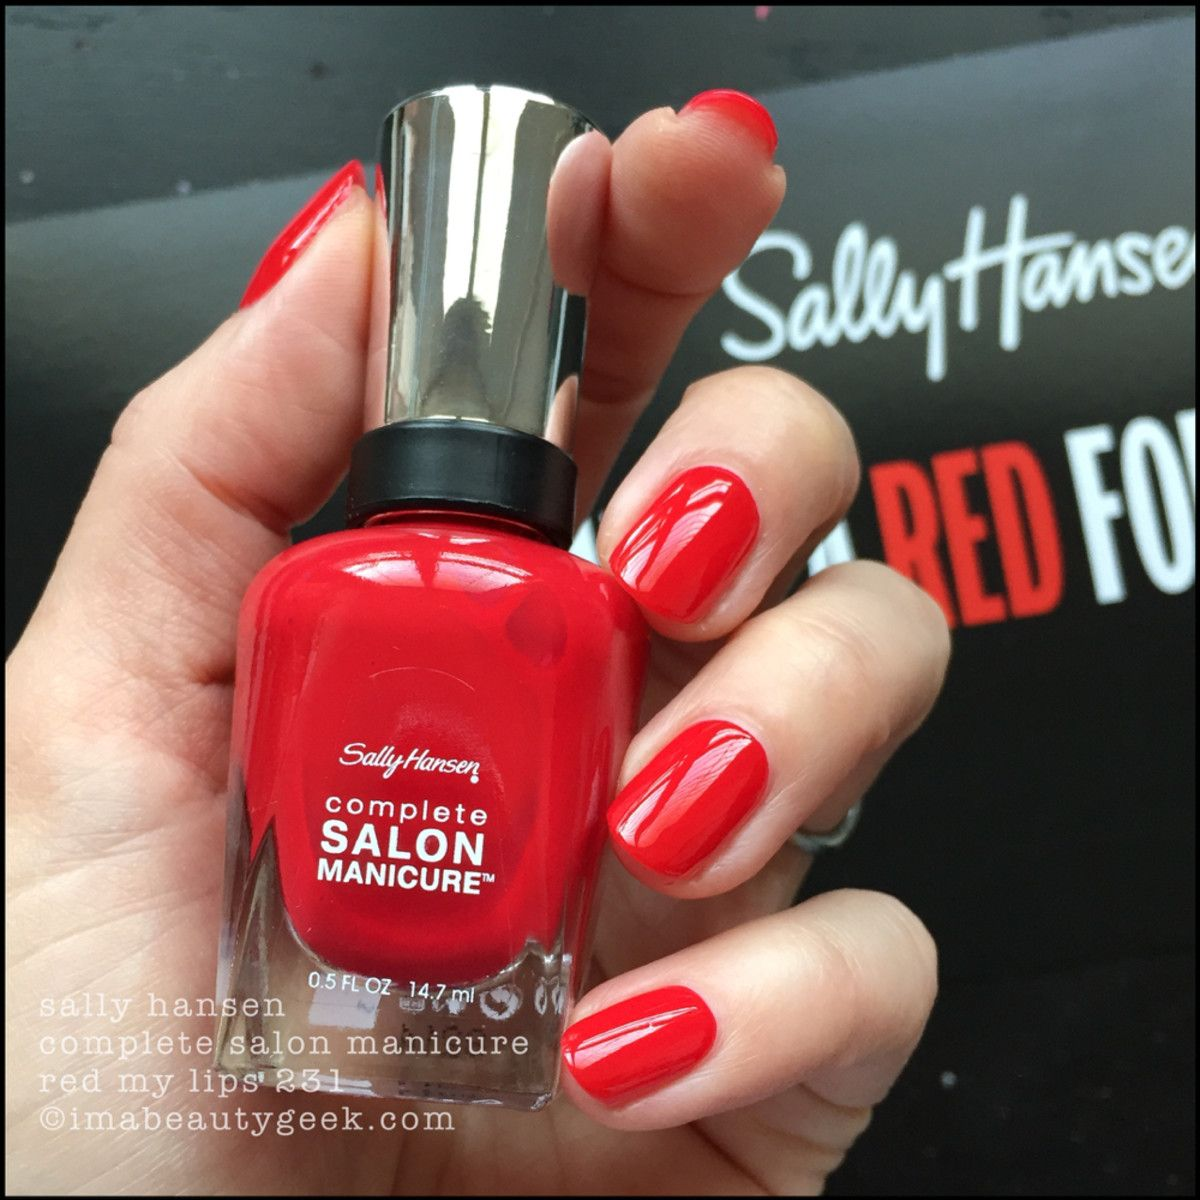 SALLY HANSEN RED/ESIGN SWATCHES & REVIEW in 2019 | Nails, Nails ...